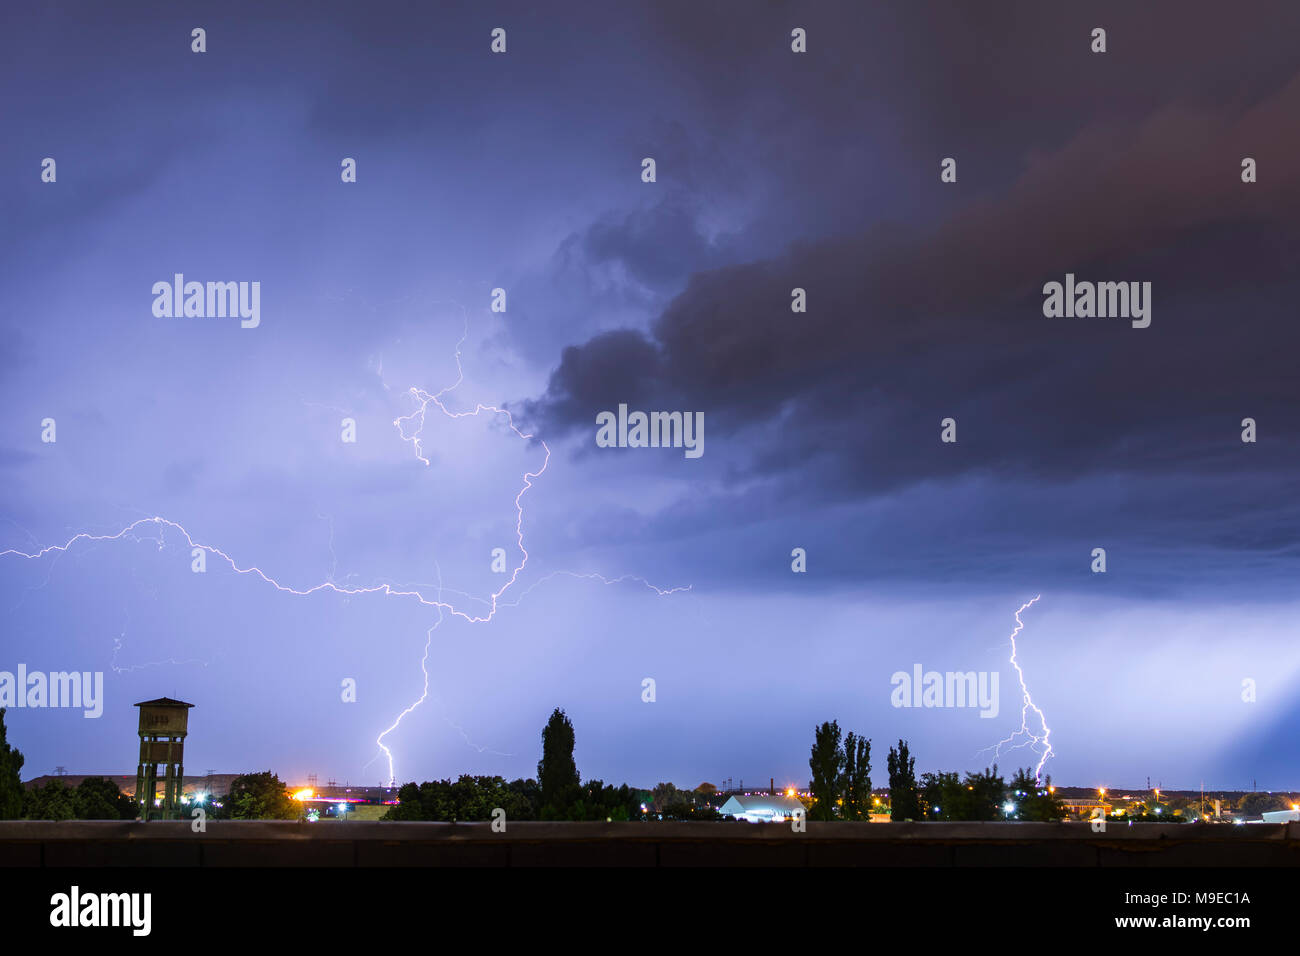 Lightning flash over a city, Thunderstorm , electricity blast storm, thunderbolt in sky Stock Photo